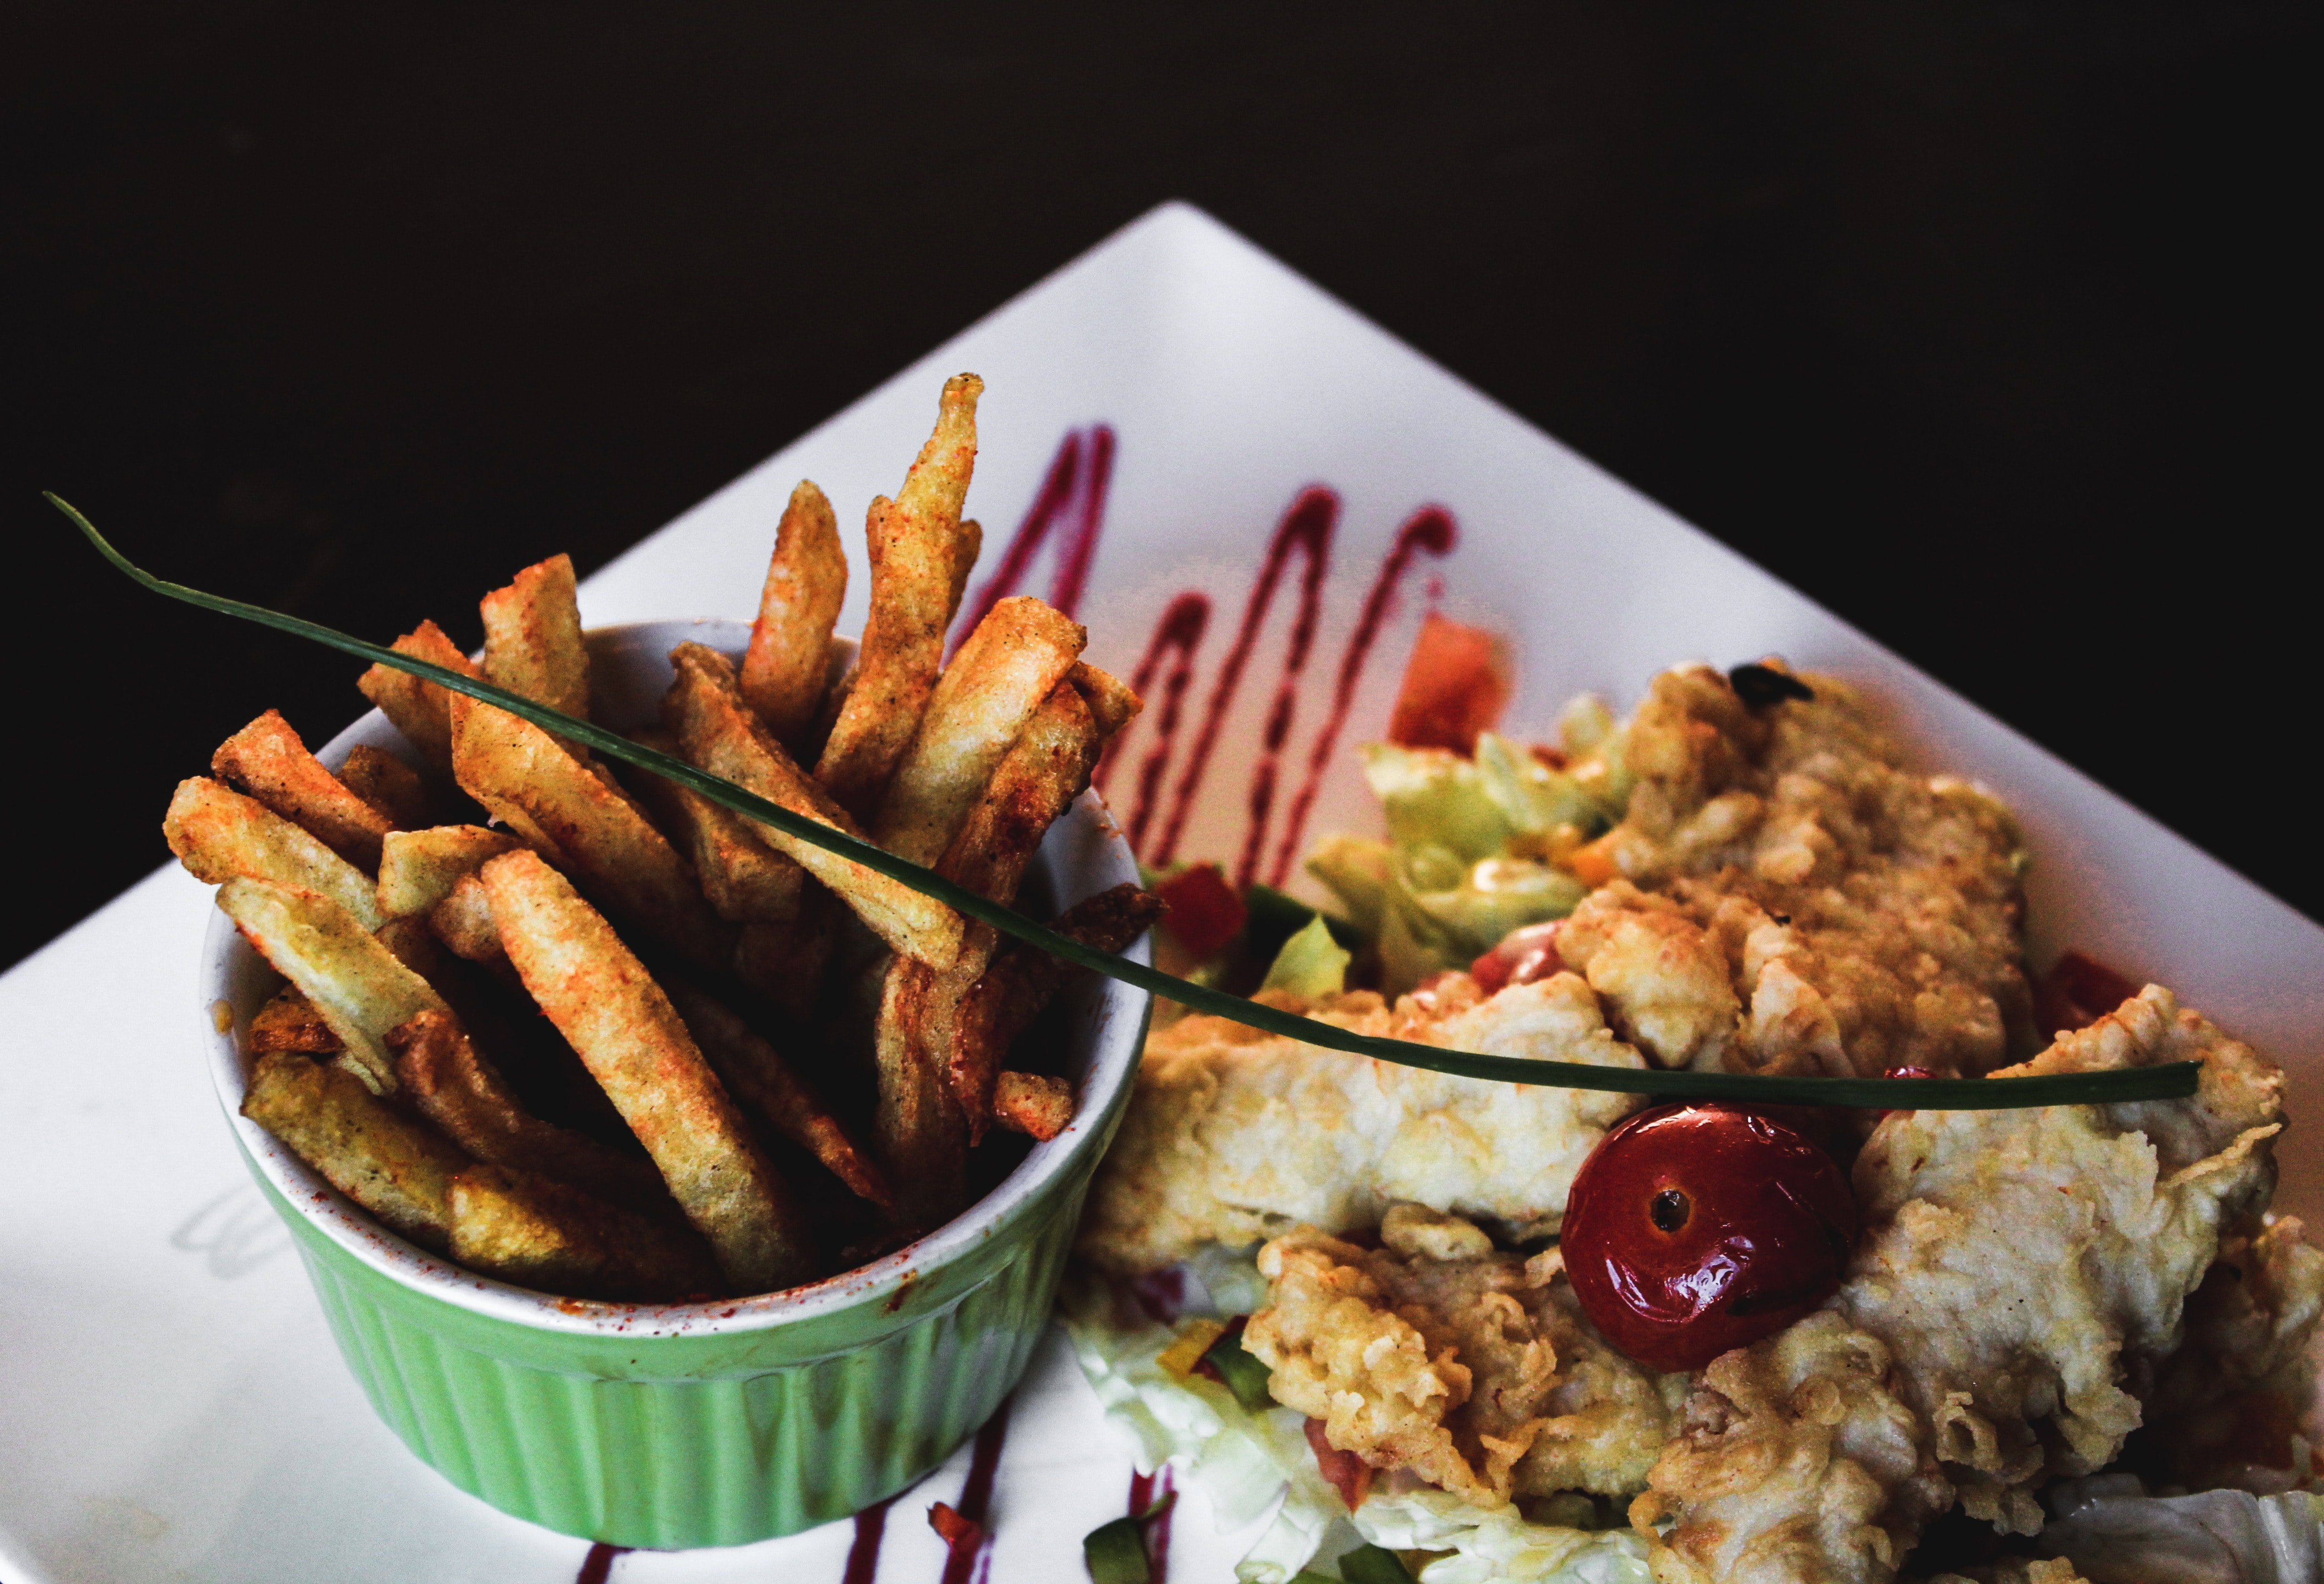 fries and omelet